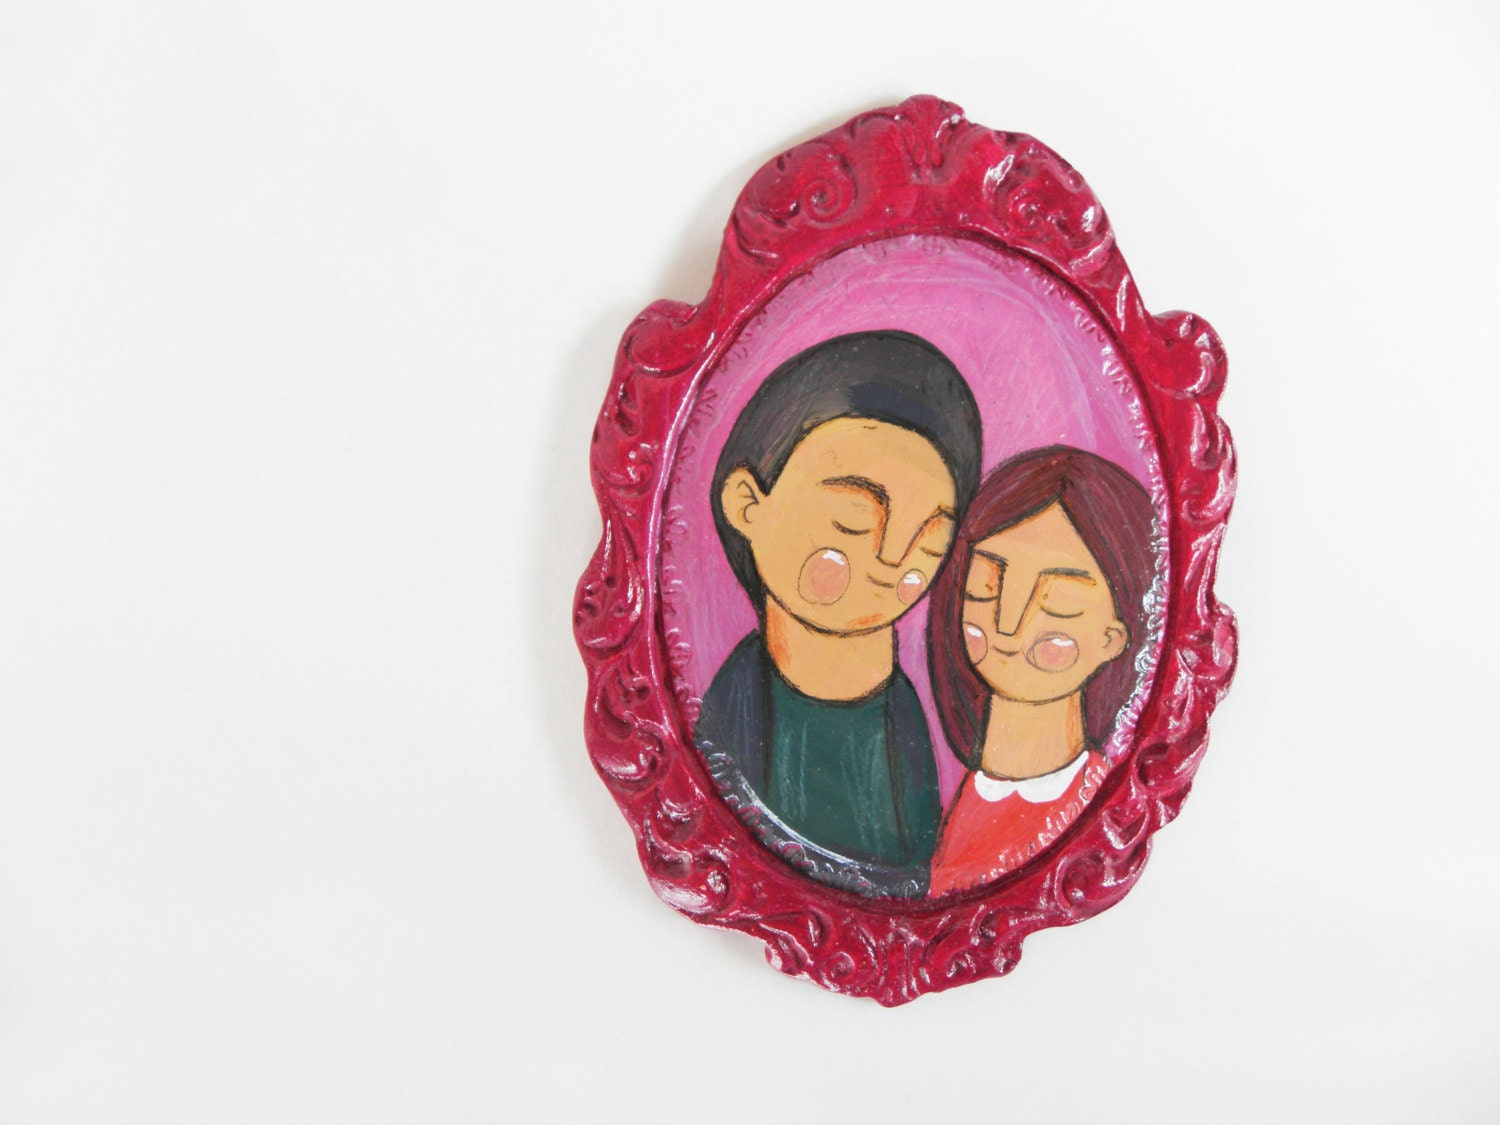 purple lovers frame, wall hanging decoration sculpture - ireneagh